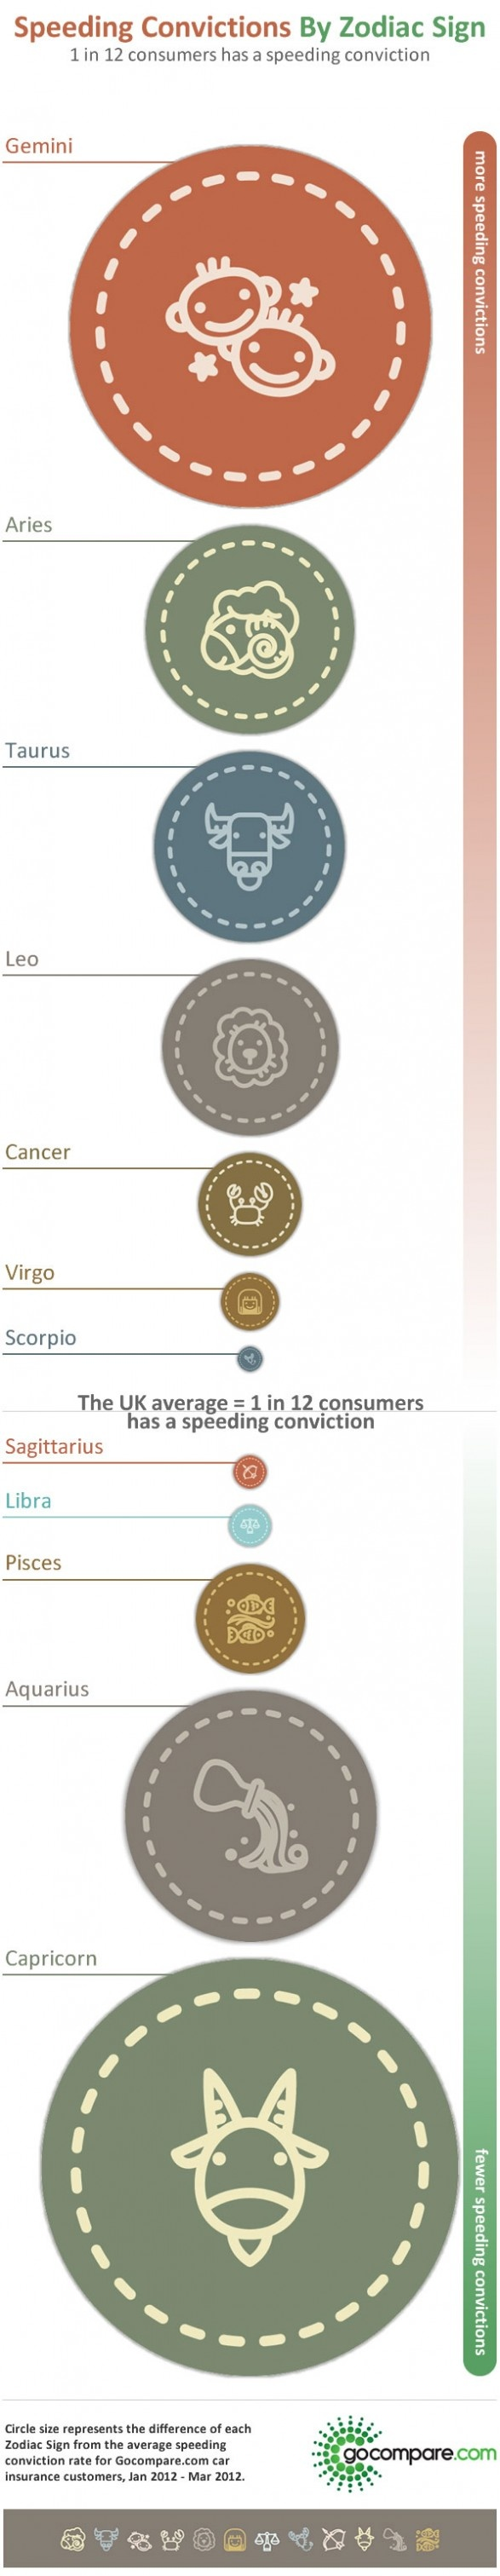 Speeding Convictions By Zodiac Sign - I wonder if this translated across the pond?